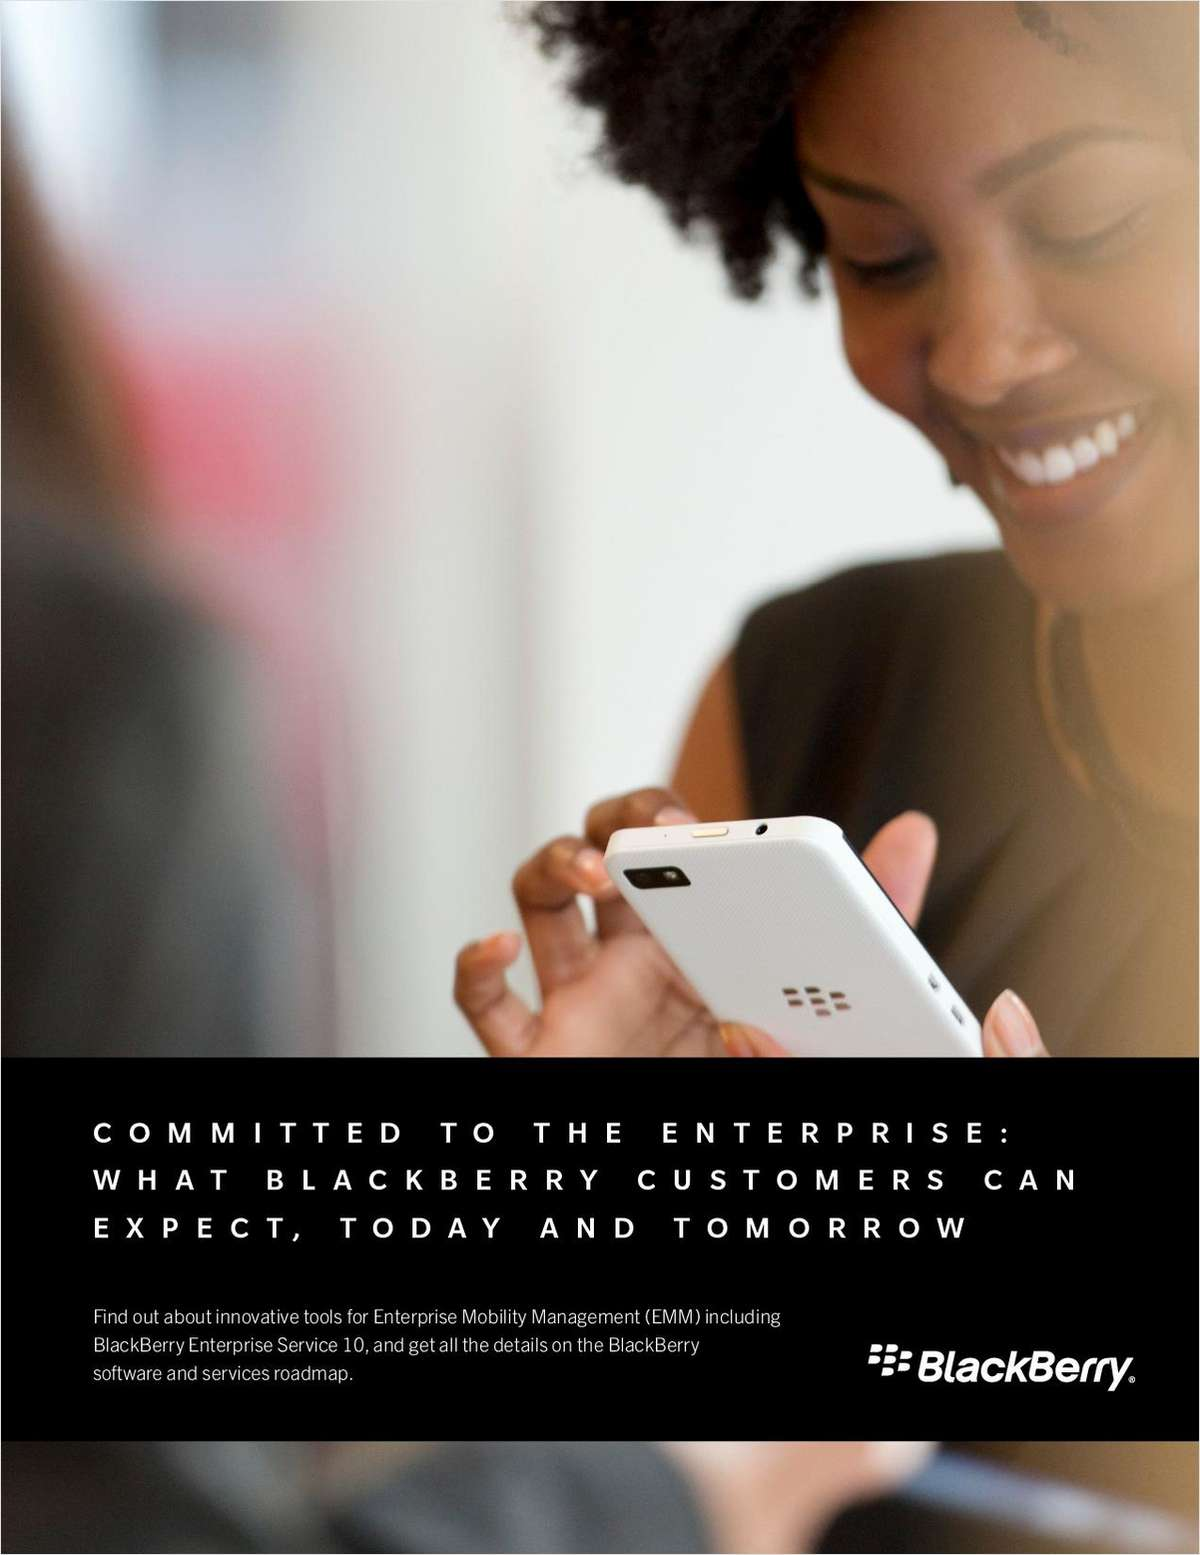 Committed to the Enterprise: What BlackBerry Customers Can Expect, Today and Tomorrow